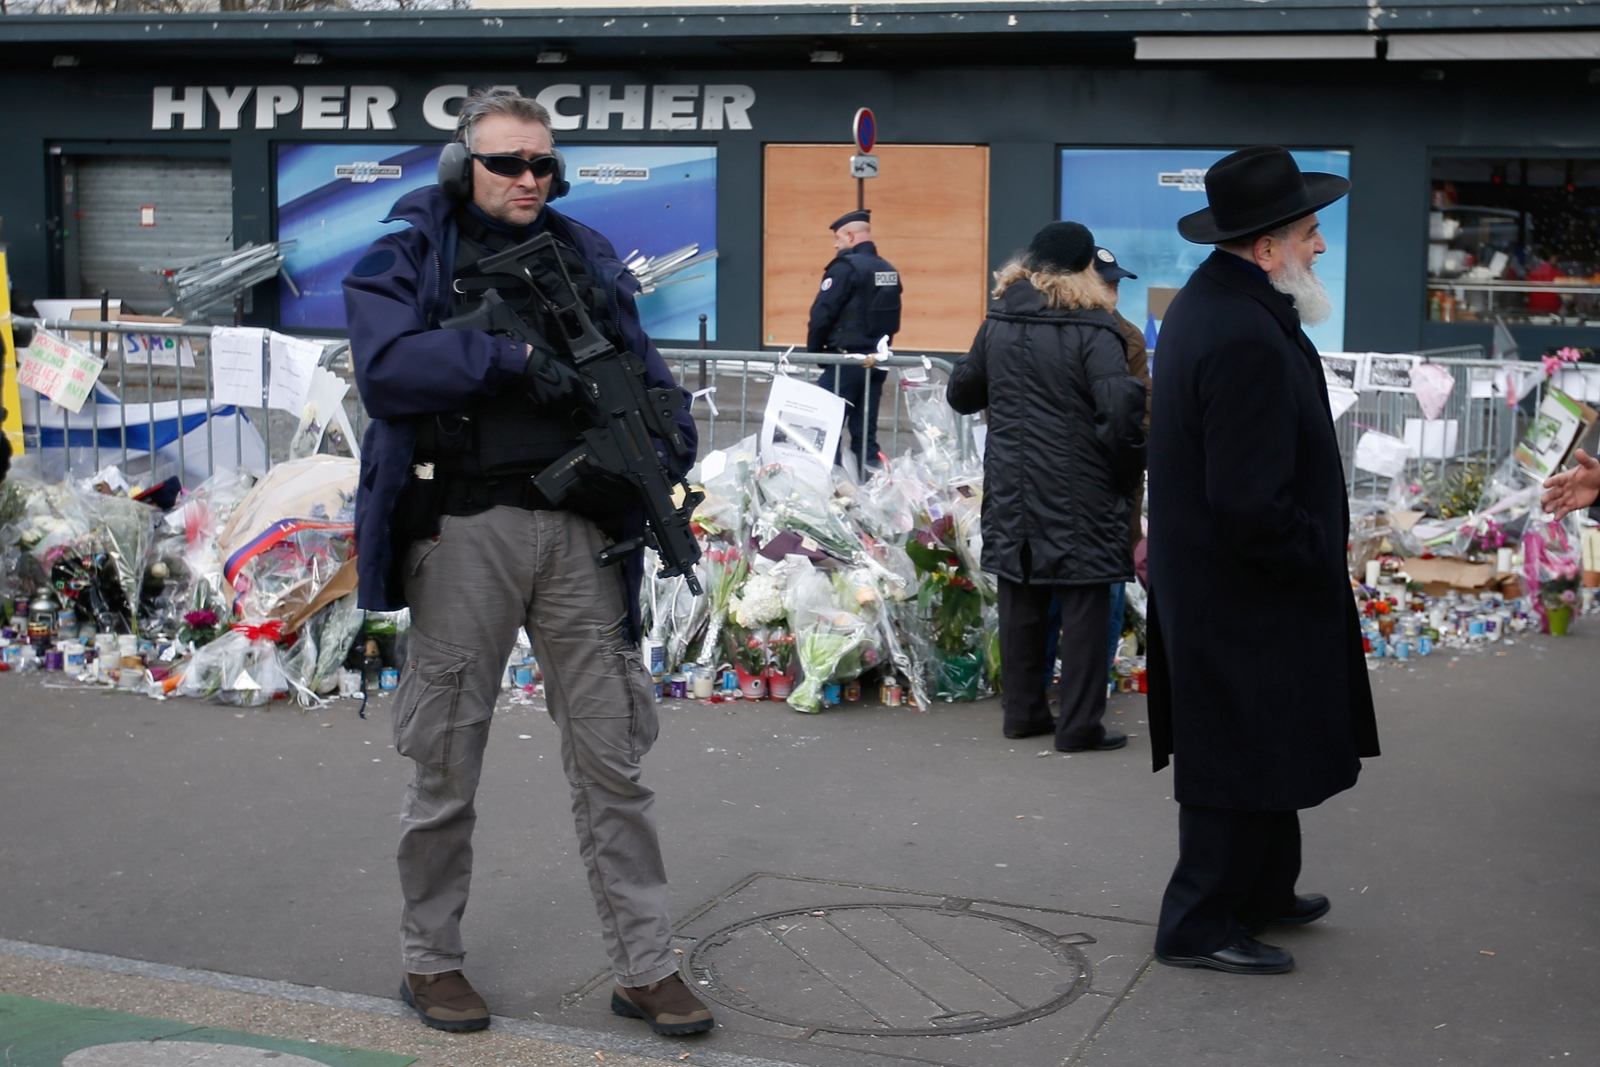 Paris: Anti-Semitic vandals torch kosher market